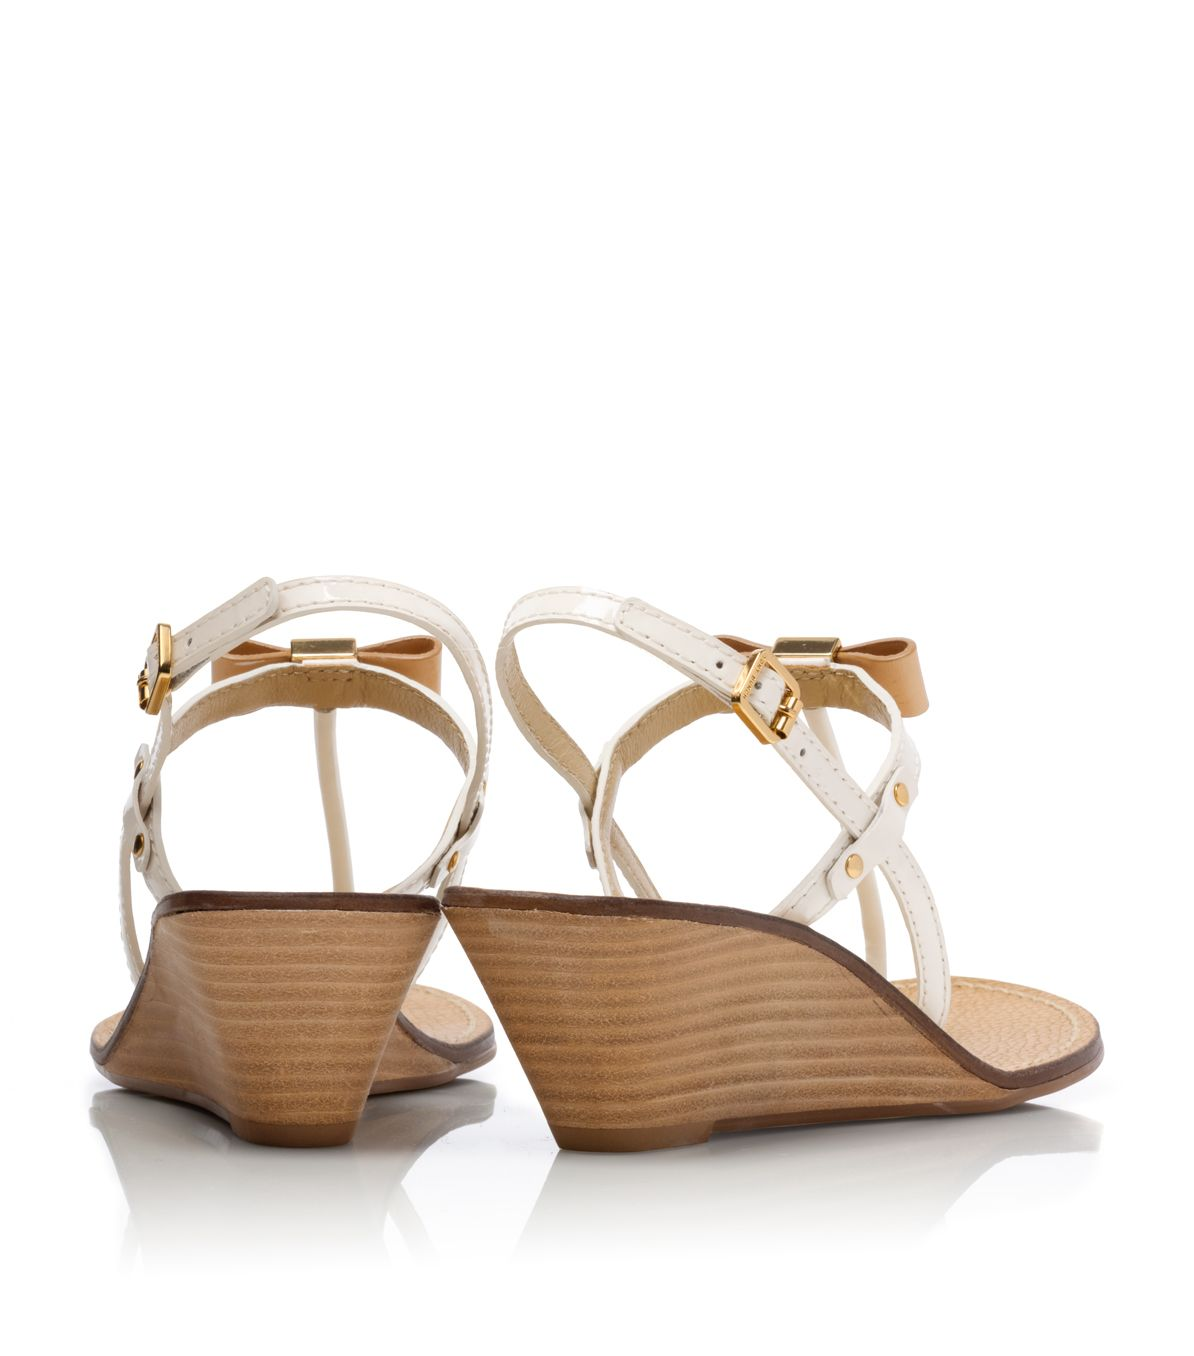 72a92f163df0 Lyst - Tory Burch Kailey Wedge Thong Sandal in Natural